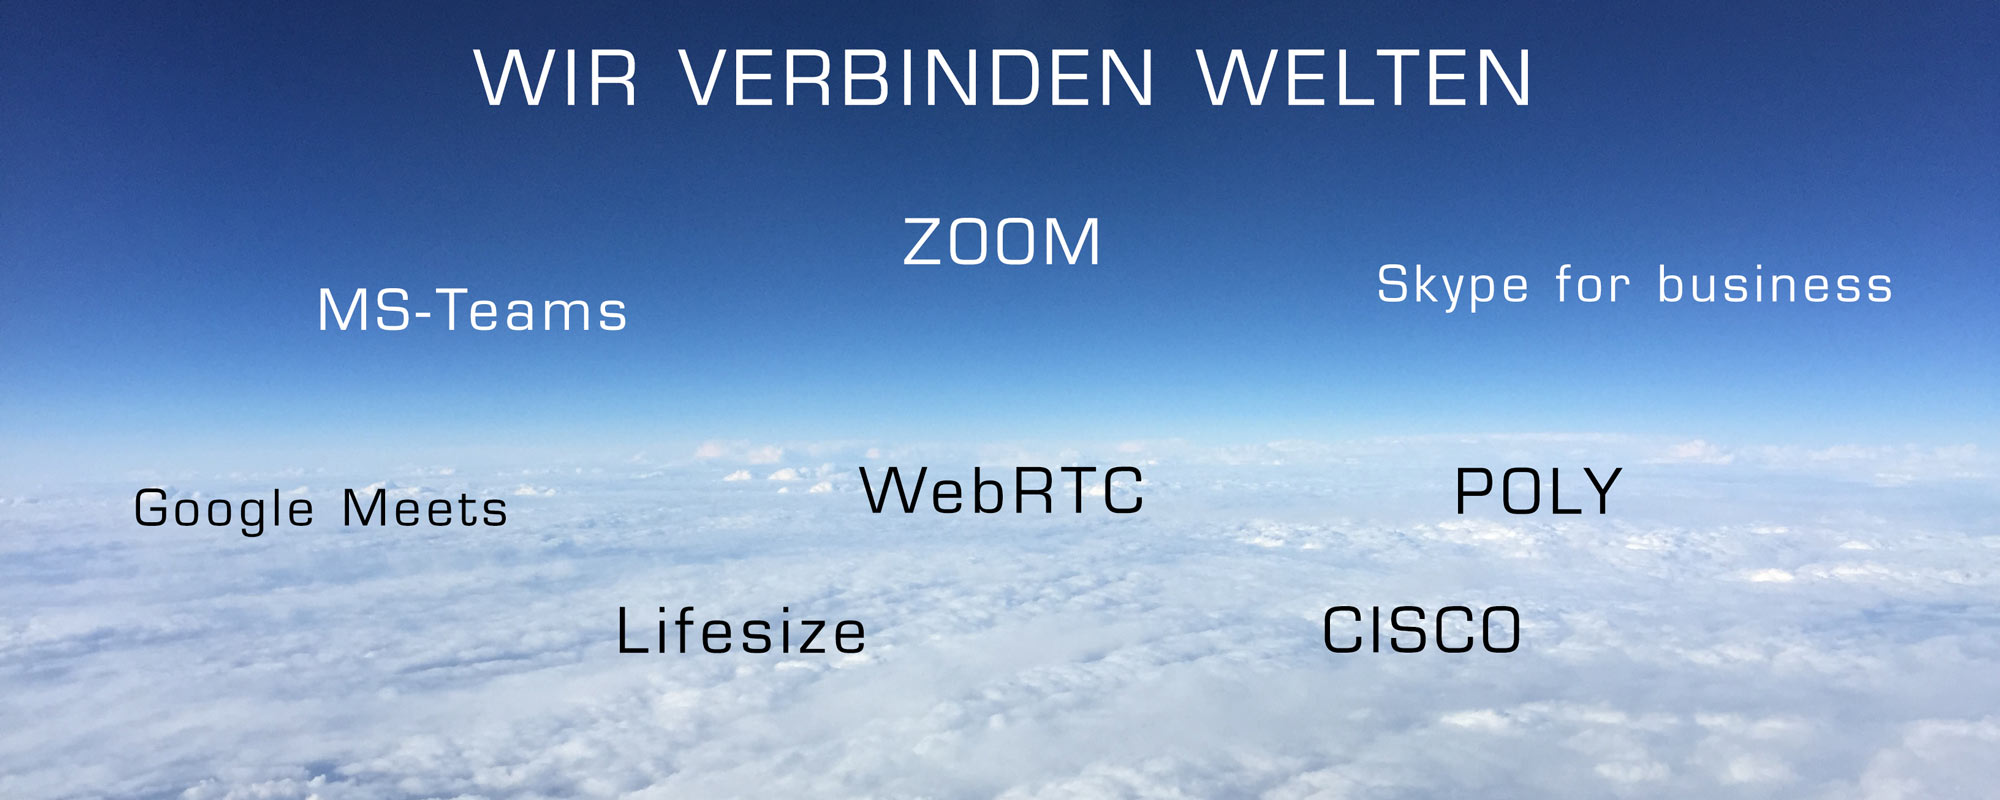 ZOOM, MS-Teams, Polycom, Cisco, Lifesize, wir vereinen sie alle